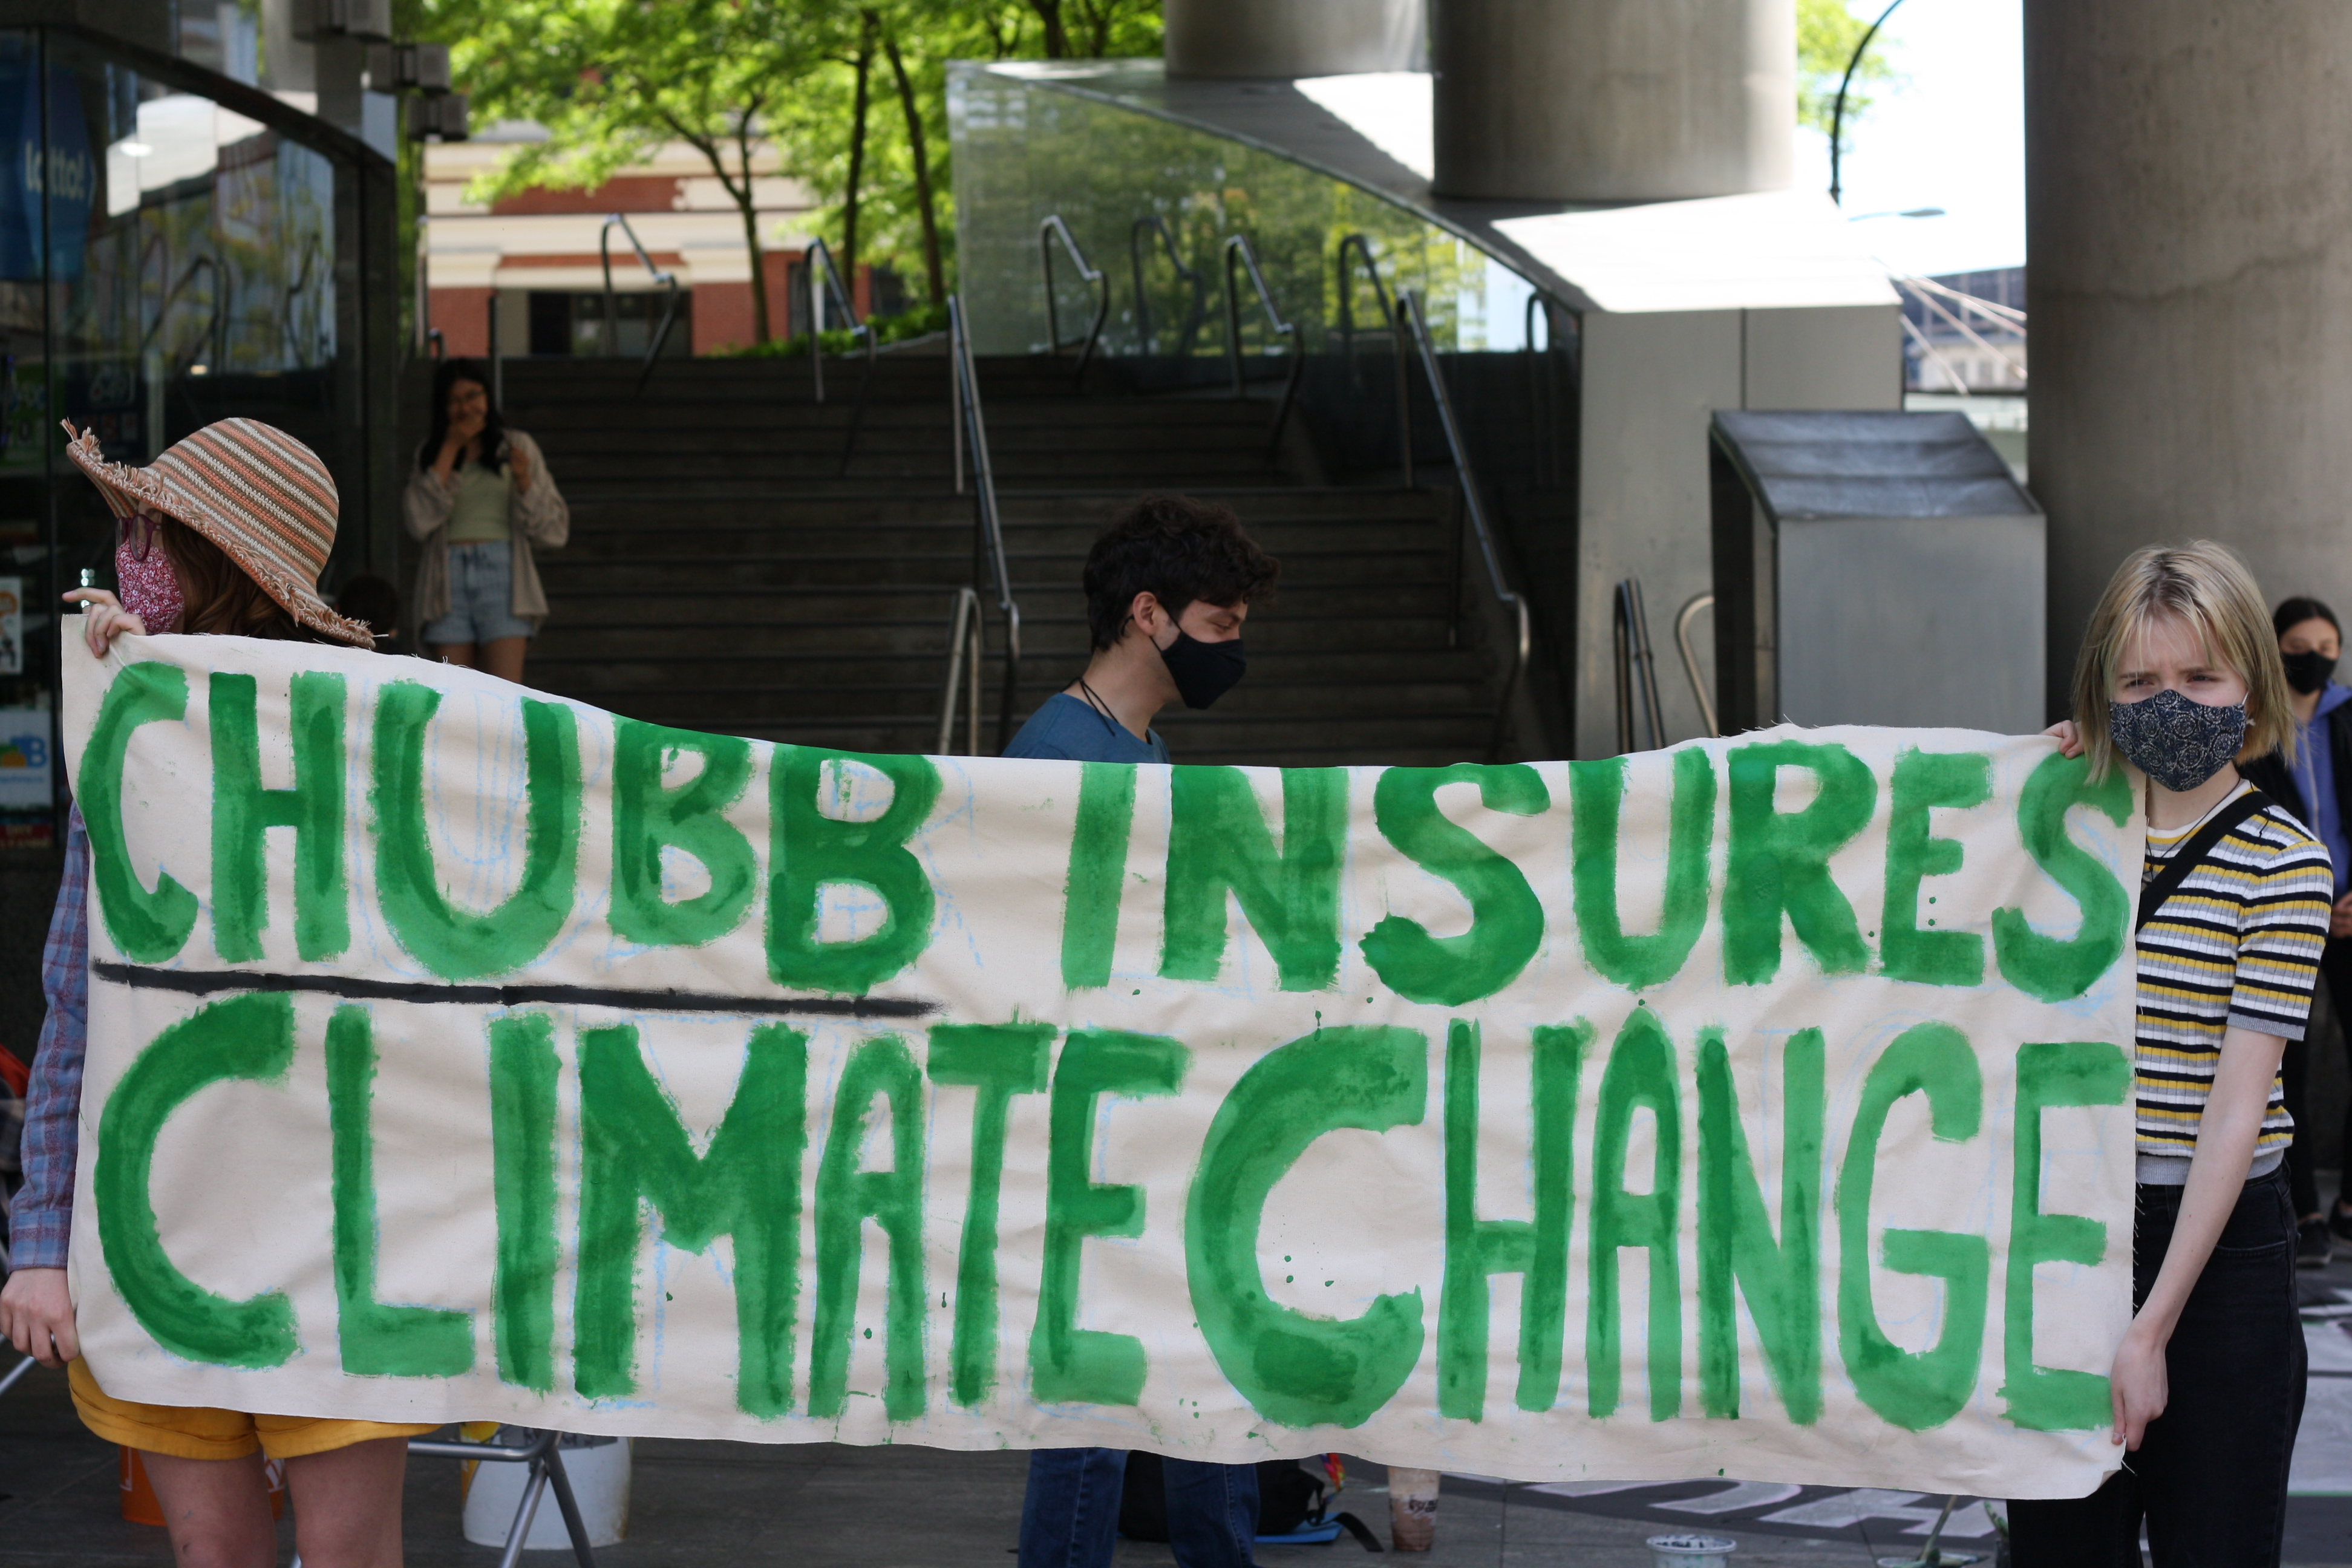 Sustainabiliteens members holding up a poster outside of the Downtown Vancouver Chubb Insurancing office, stating Chubb Insures Climate Change.